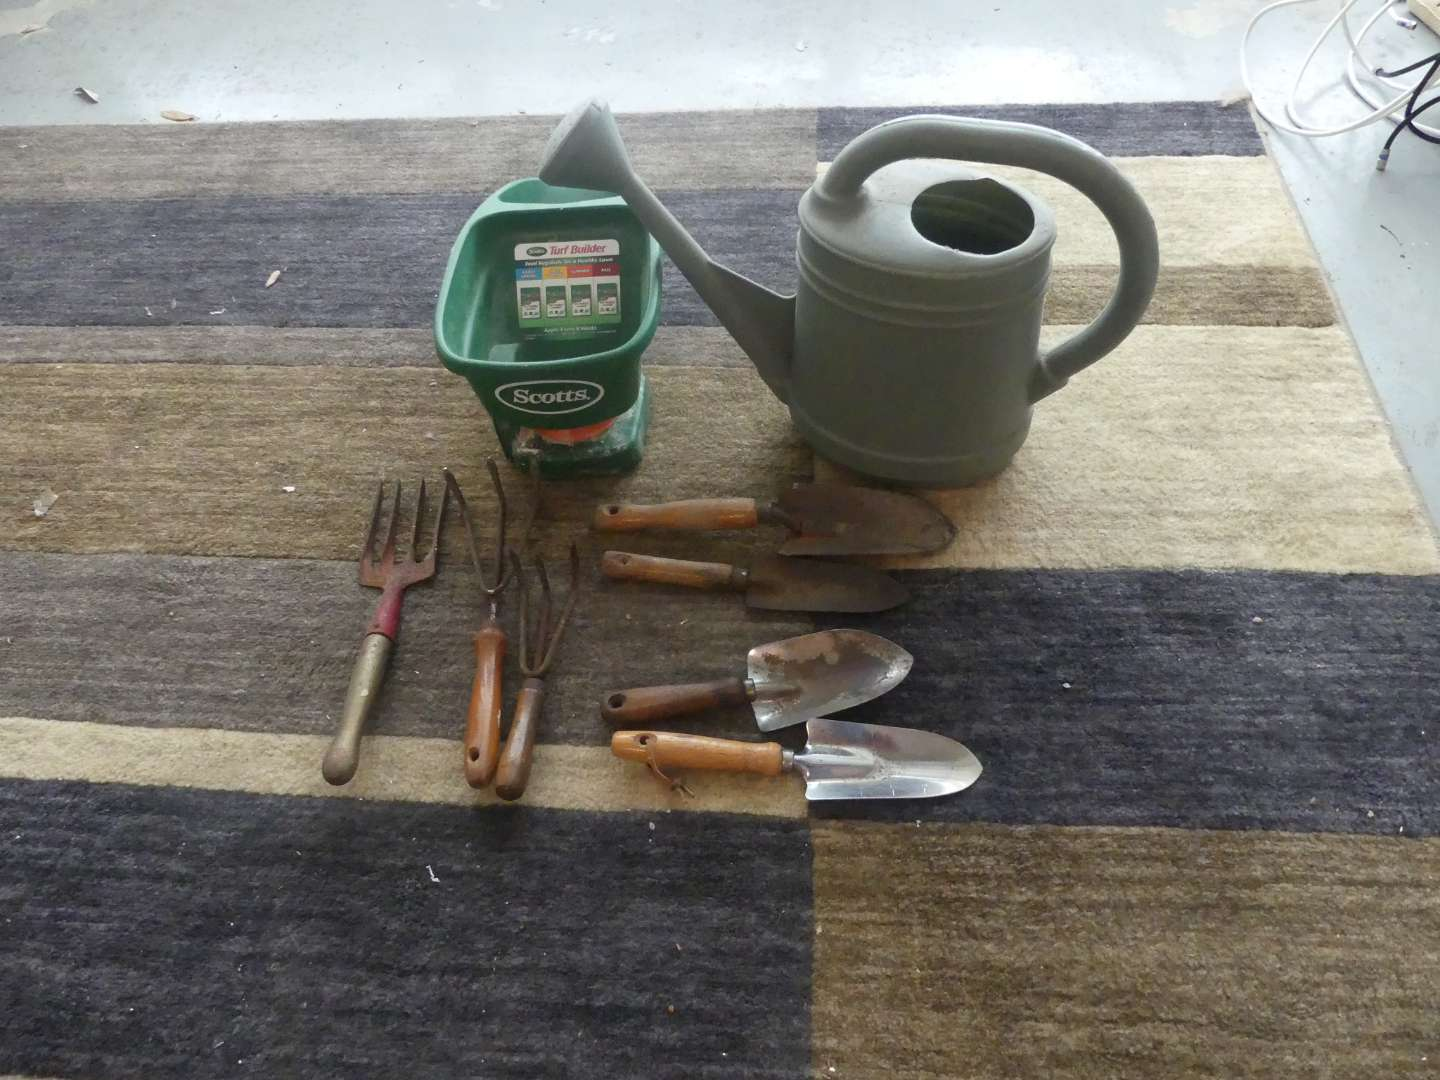 Lot #171 Lot of Gardening Tools and Watering Can